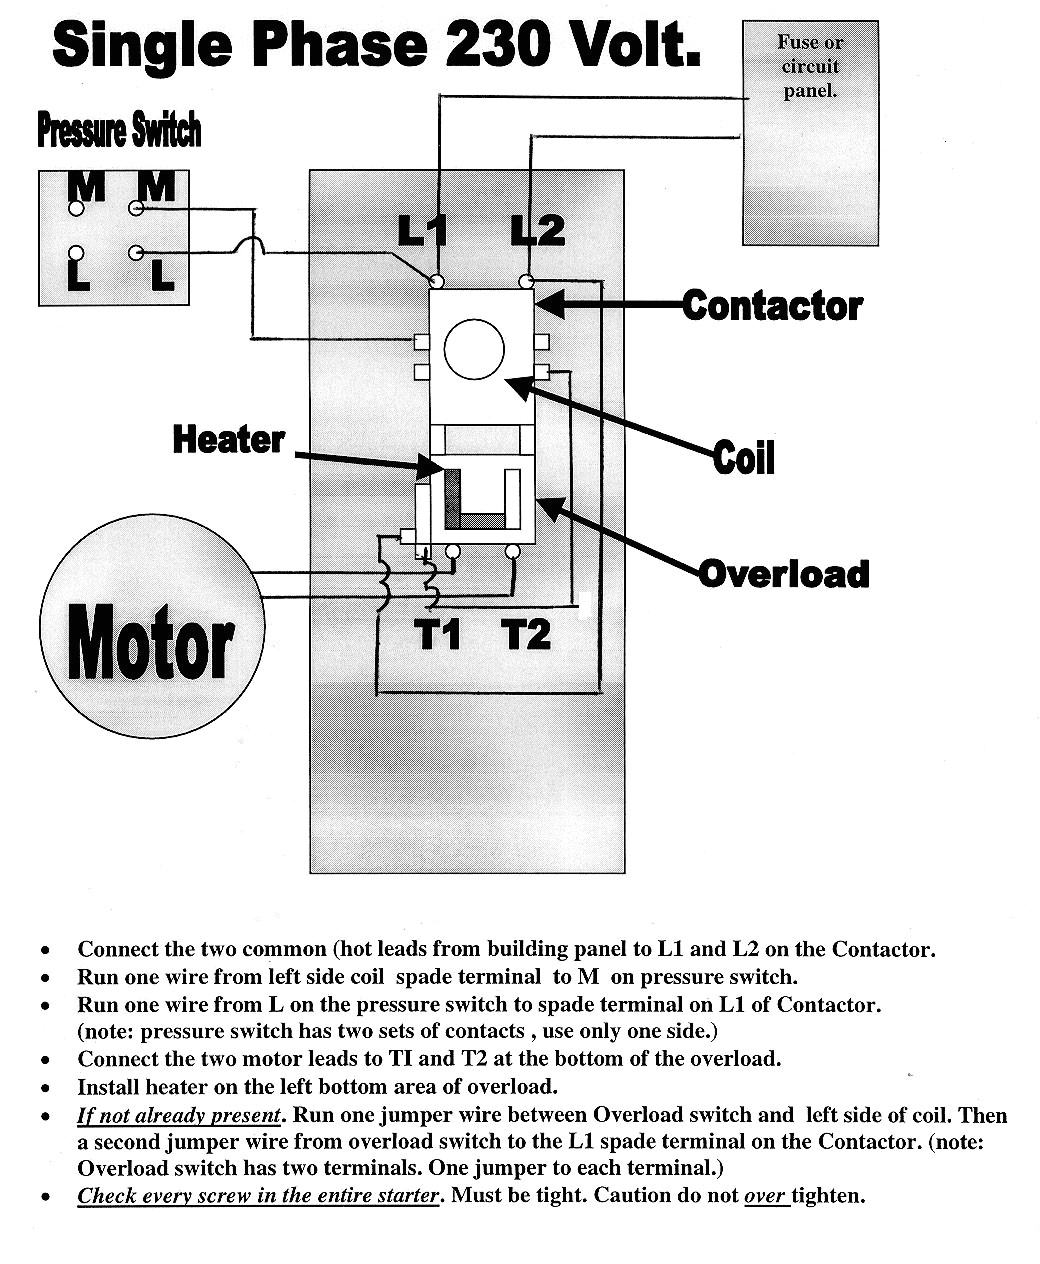 square d 2601ag2 wiring diagram download stunning square d motor starter wiring diagram book gallery